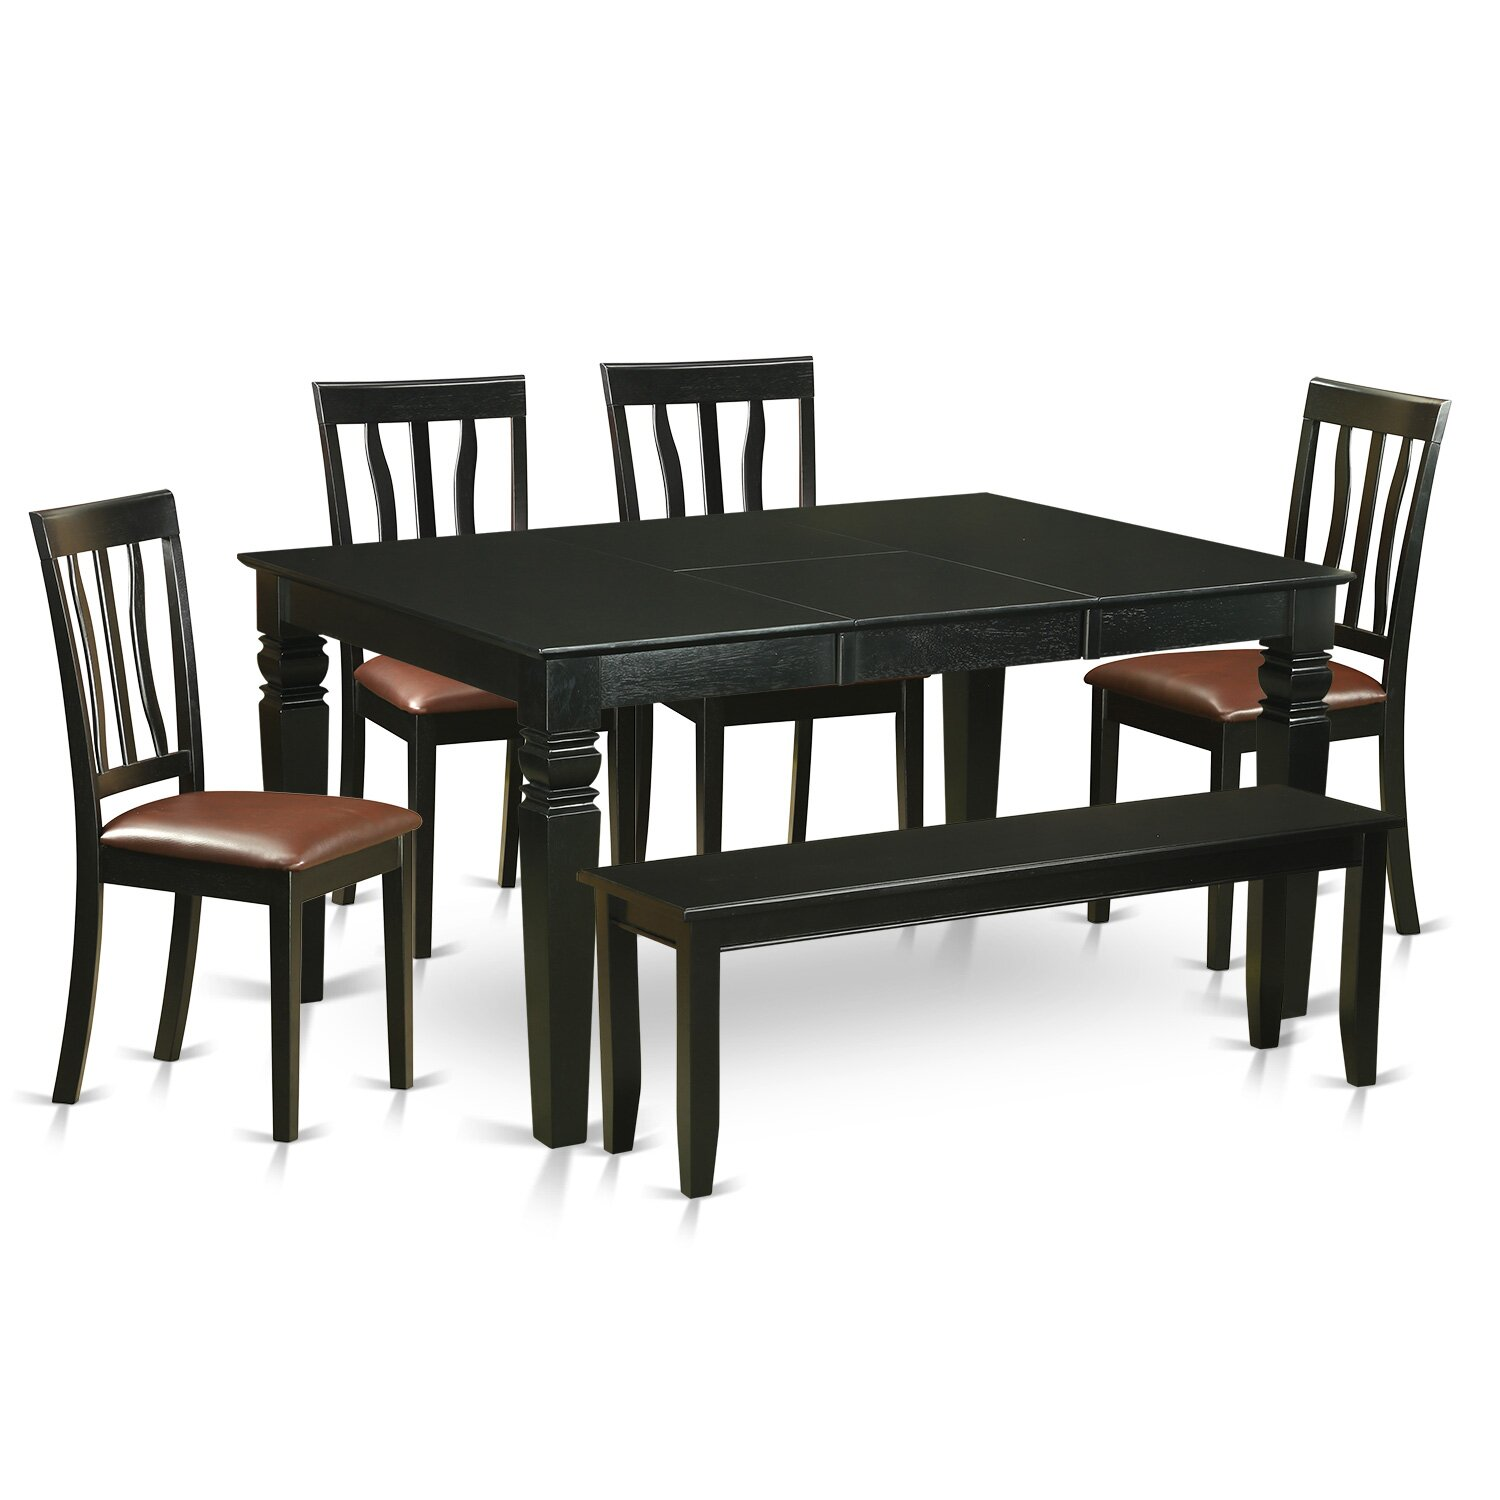 Wooden importers weston 6 piece dining set wayfair for Dining room chair set